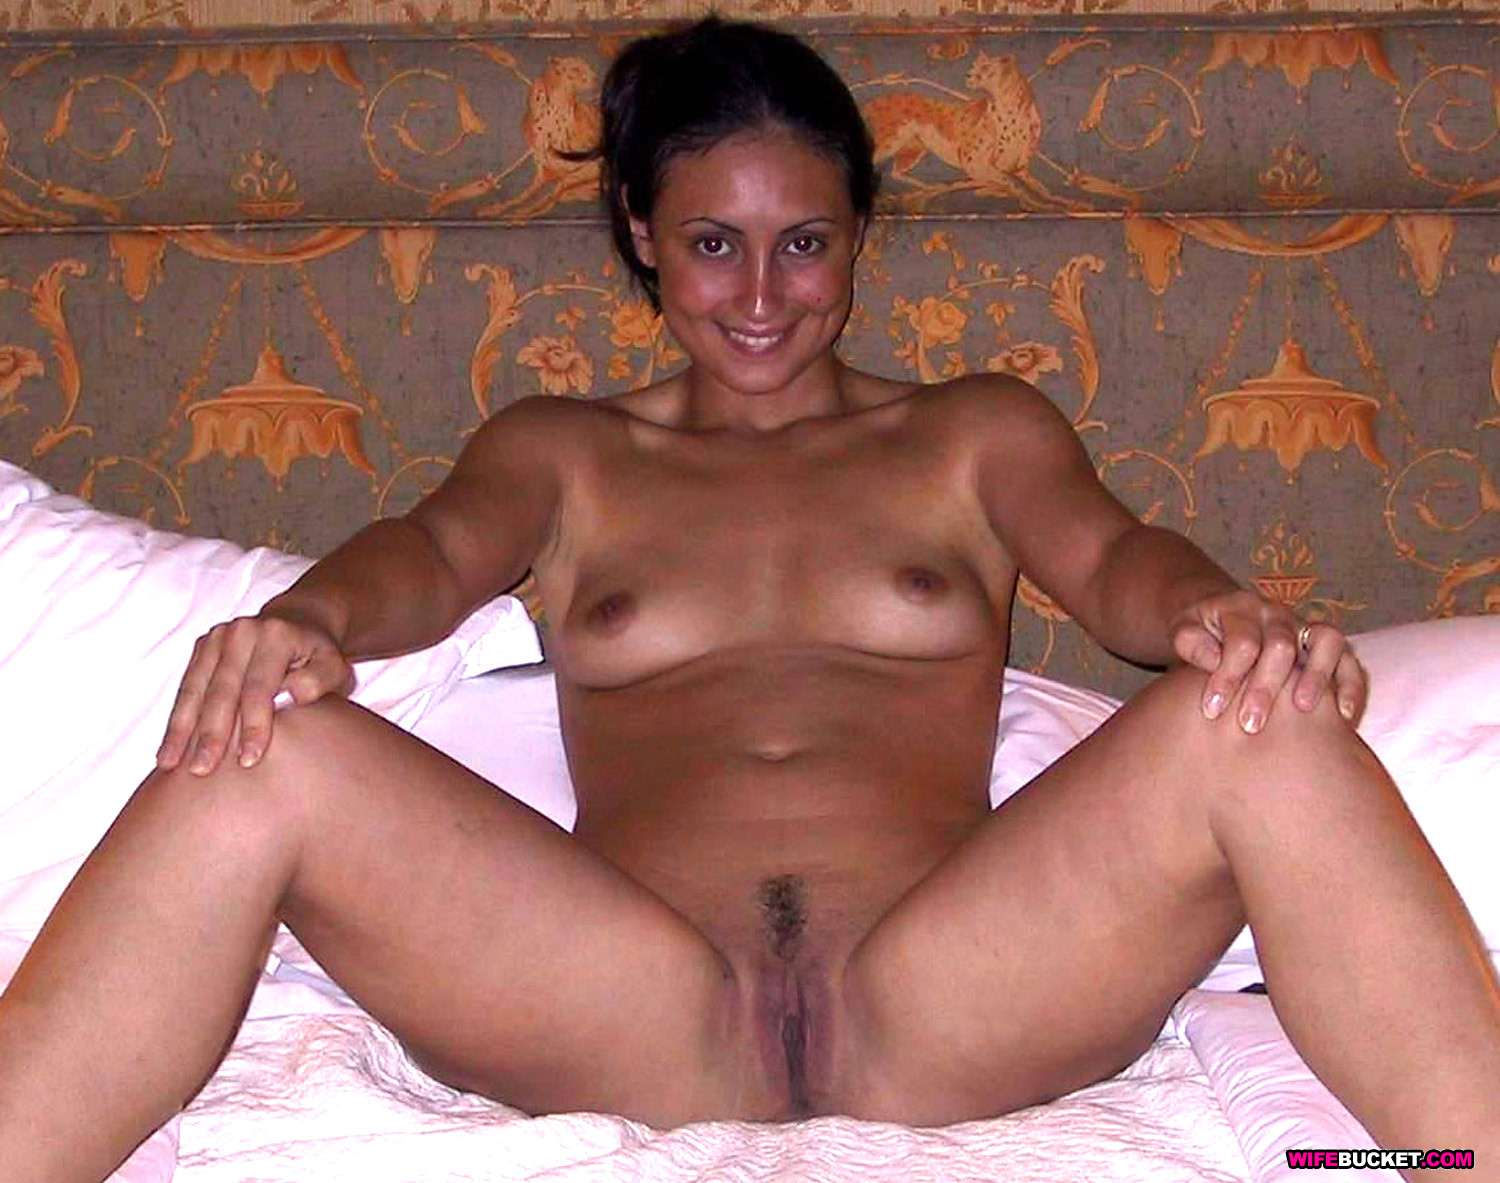 Nude amateur college girl